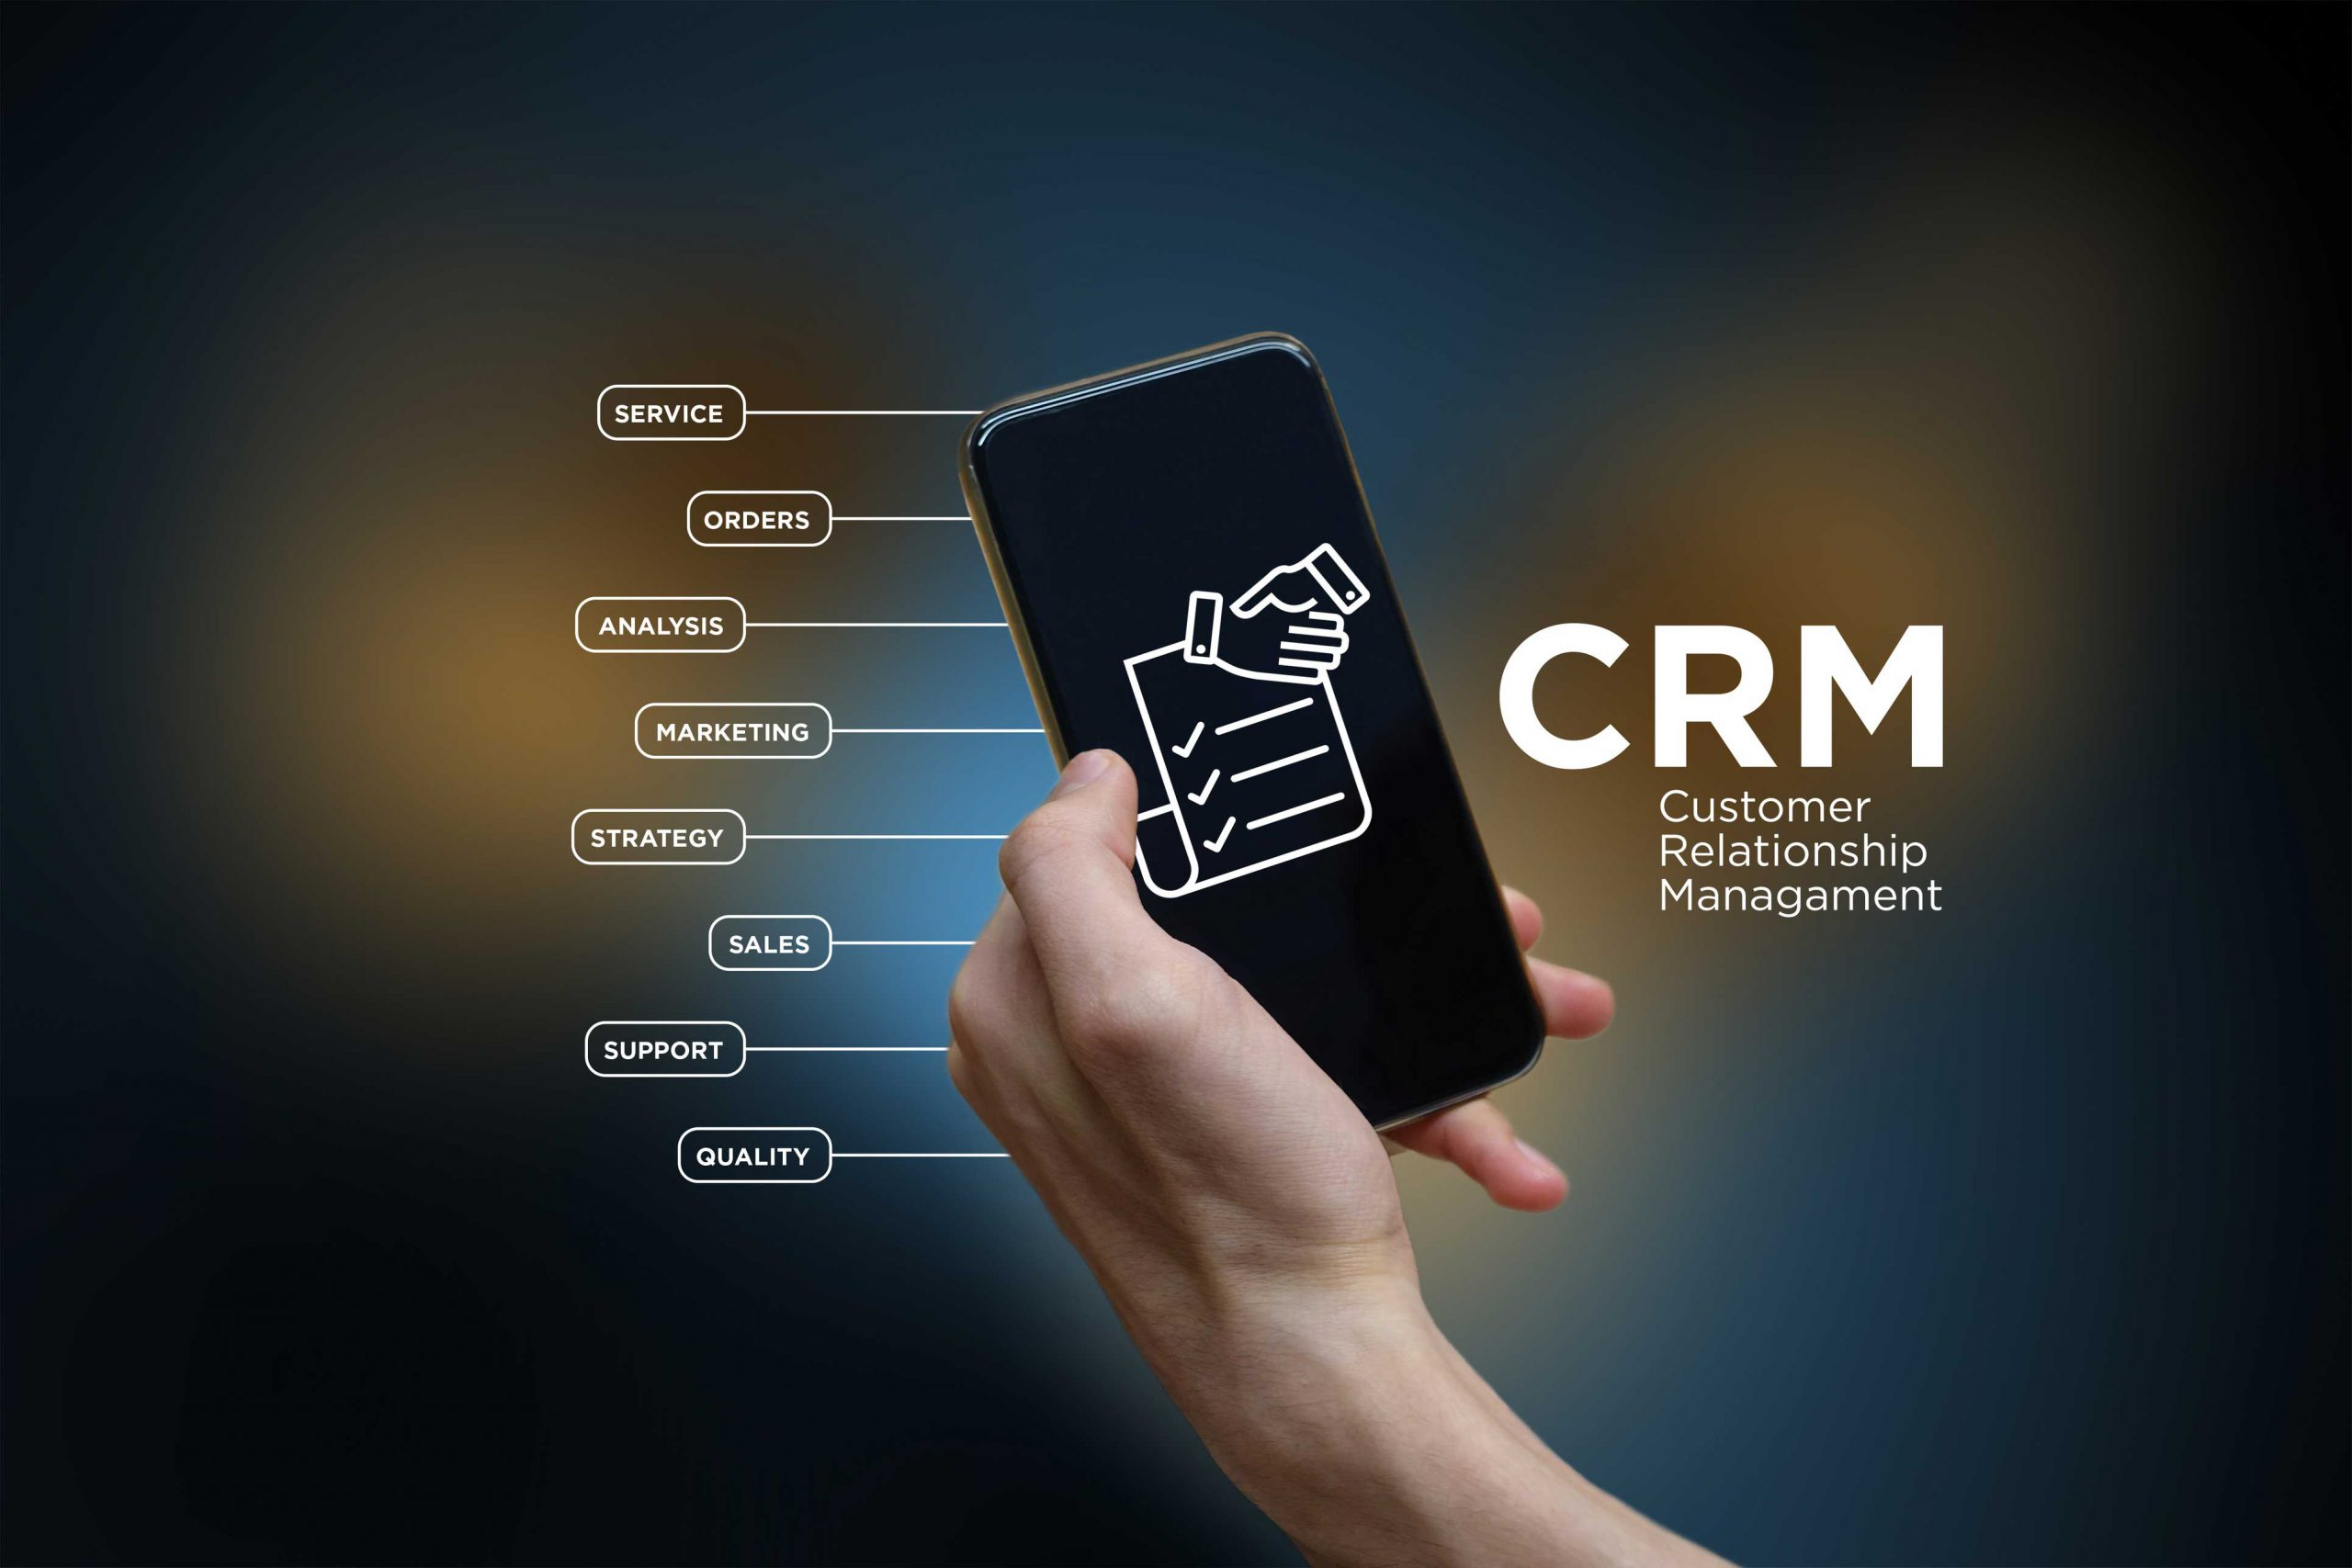 CRM-Image-for-About-Me